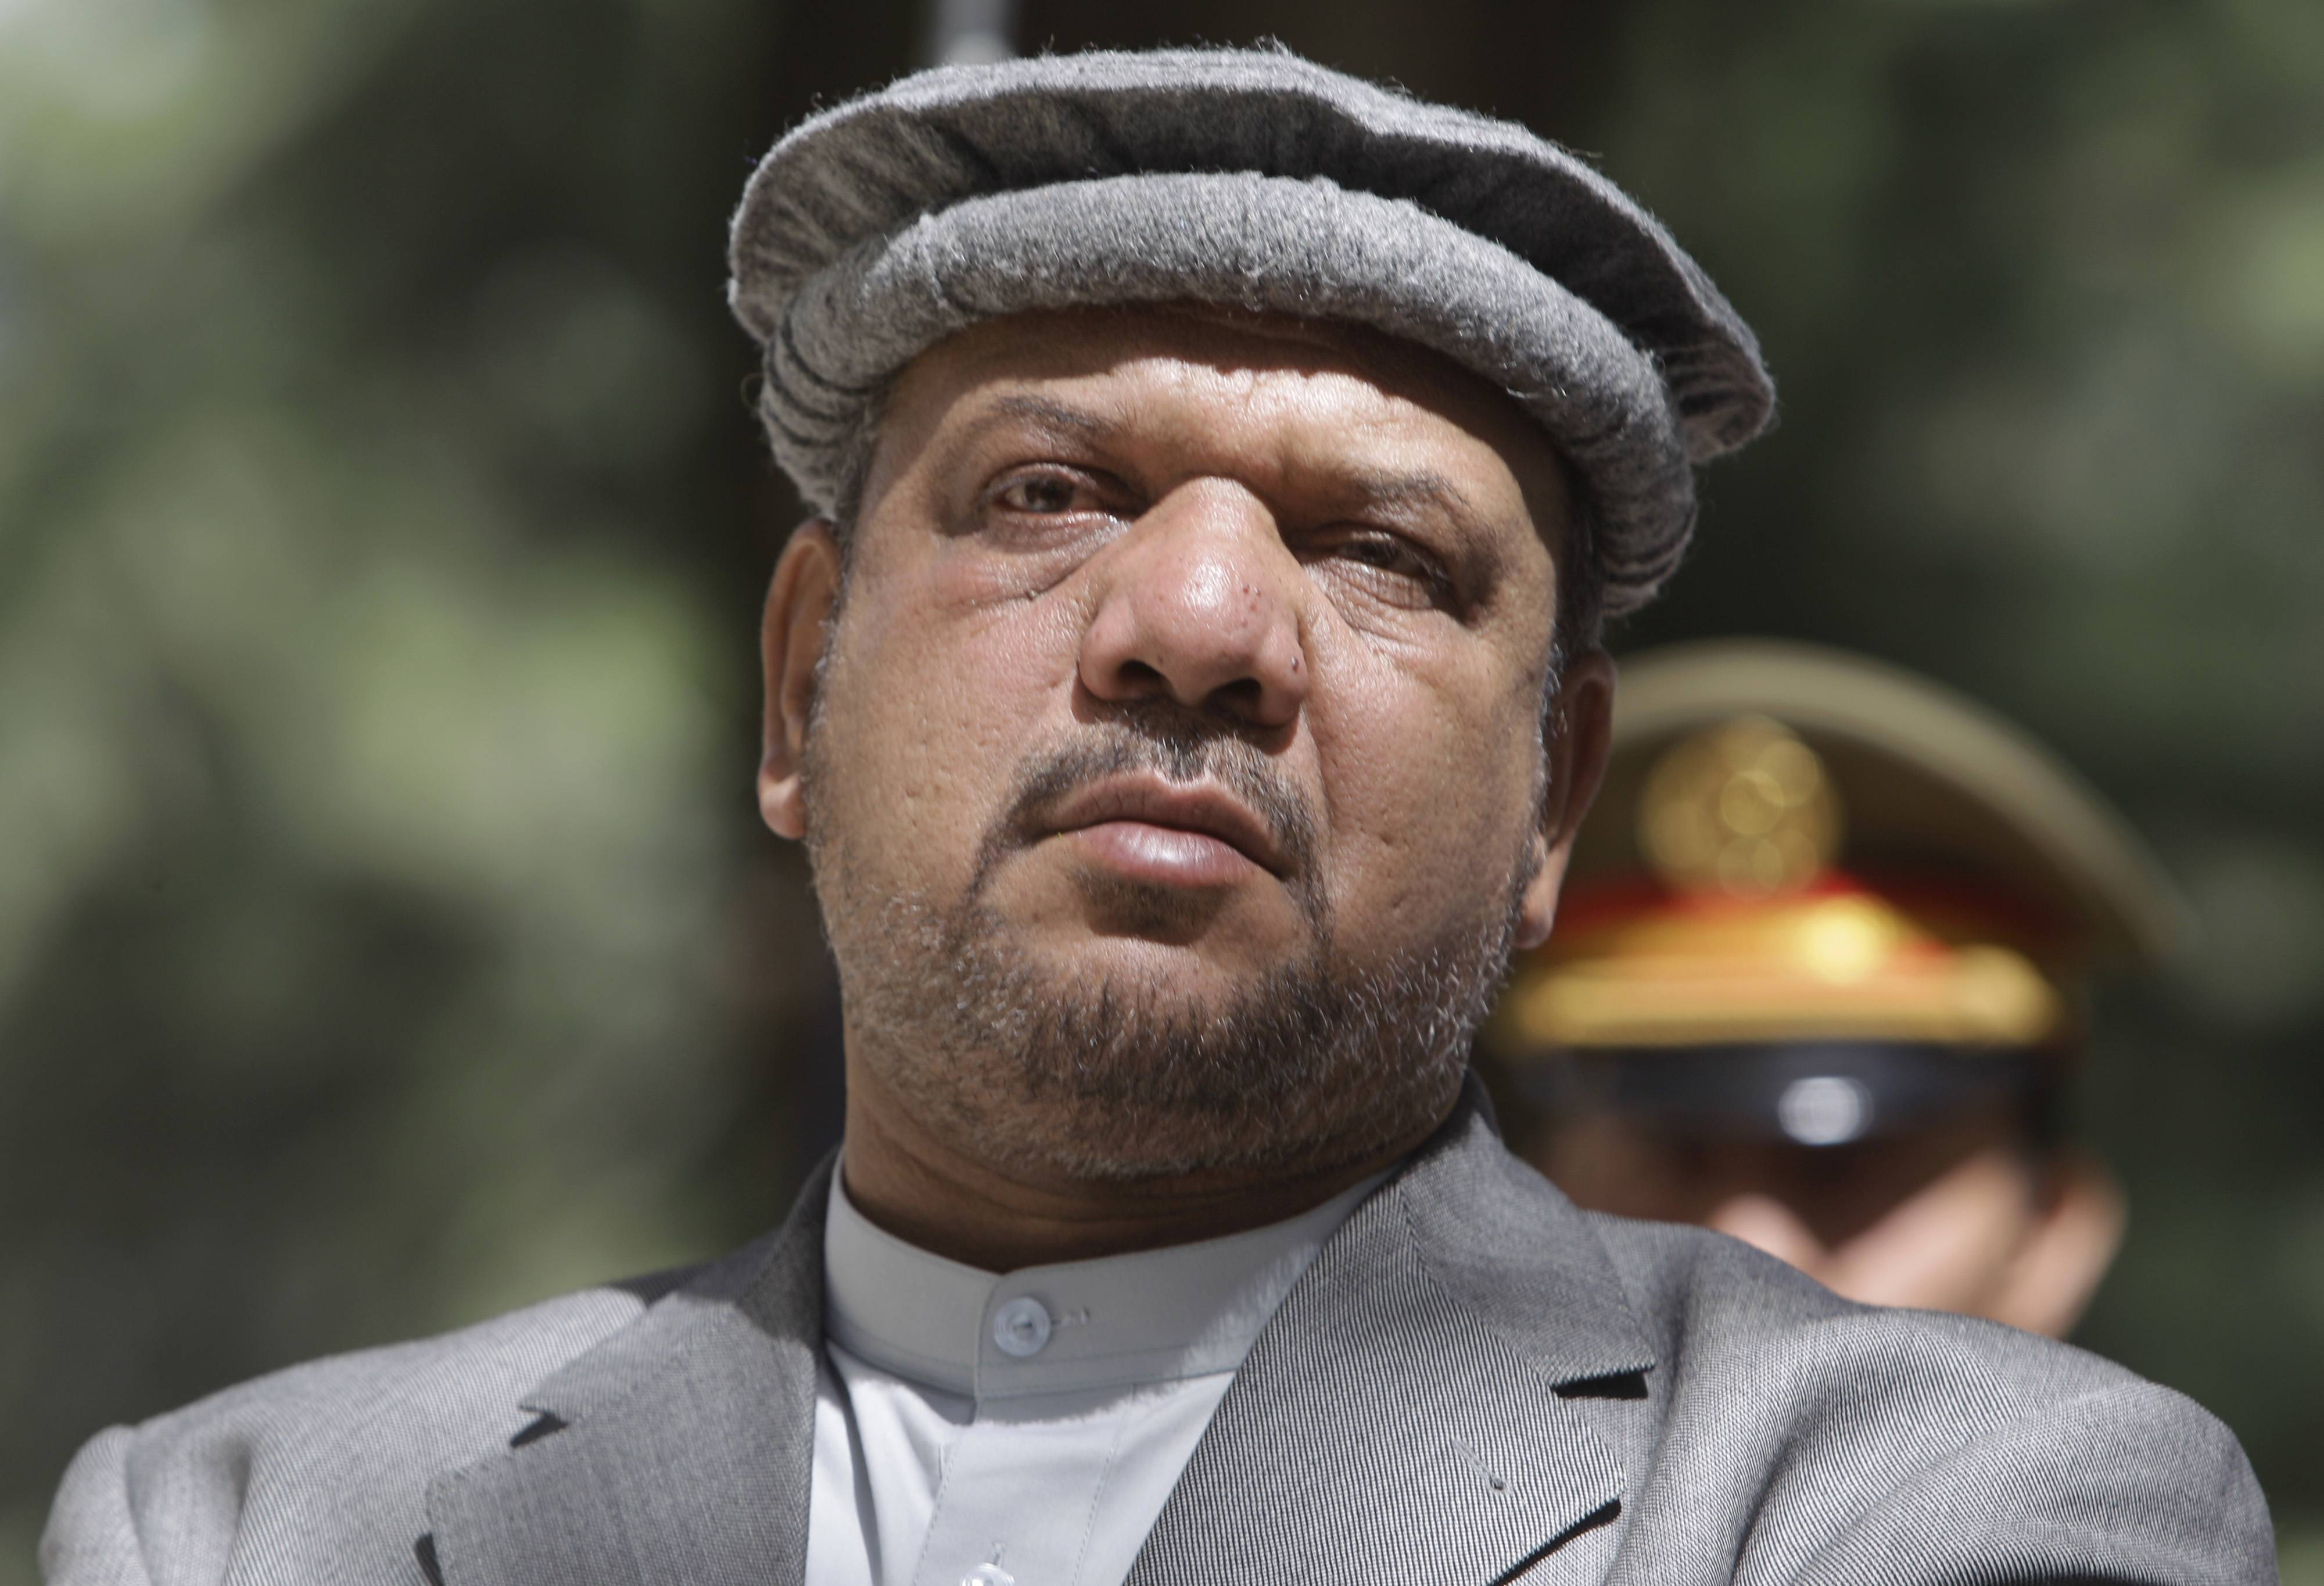 Afghanistan's influential Vice President Mohammad Qasim Fahim, a leading commander in the alliance that fought the Taliban who was later accused with other warlords of targeting civilian areas during the country's civil war, died Sunday.